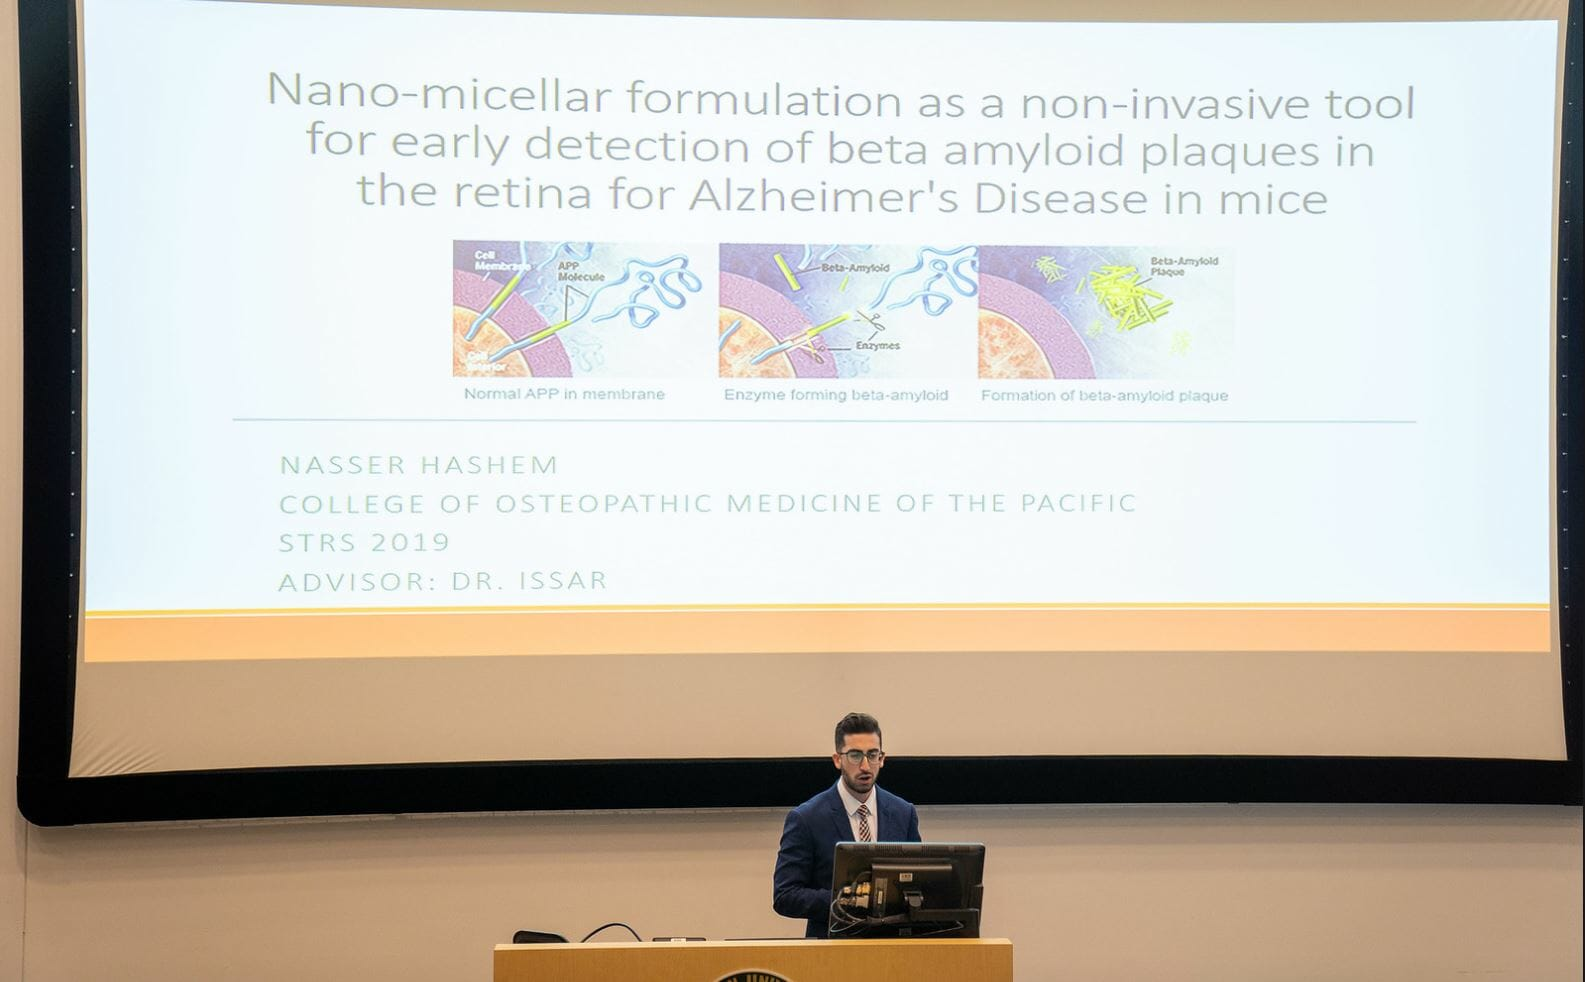 WESTERNU STUDENTS PRESENT RESEARCH AT SYMPOSIUM